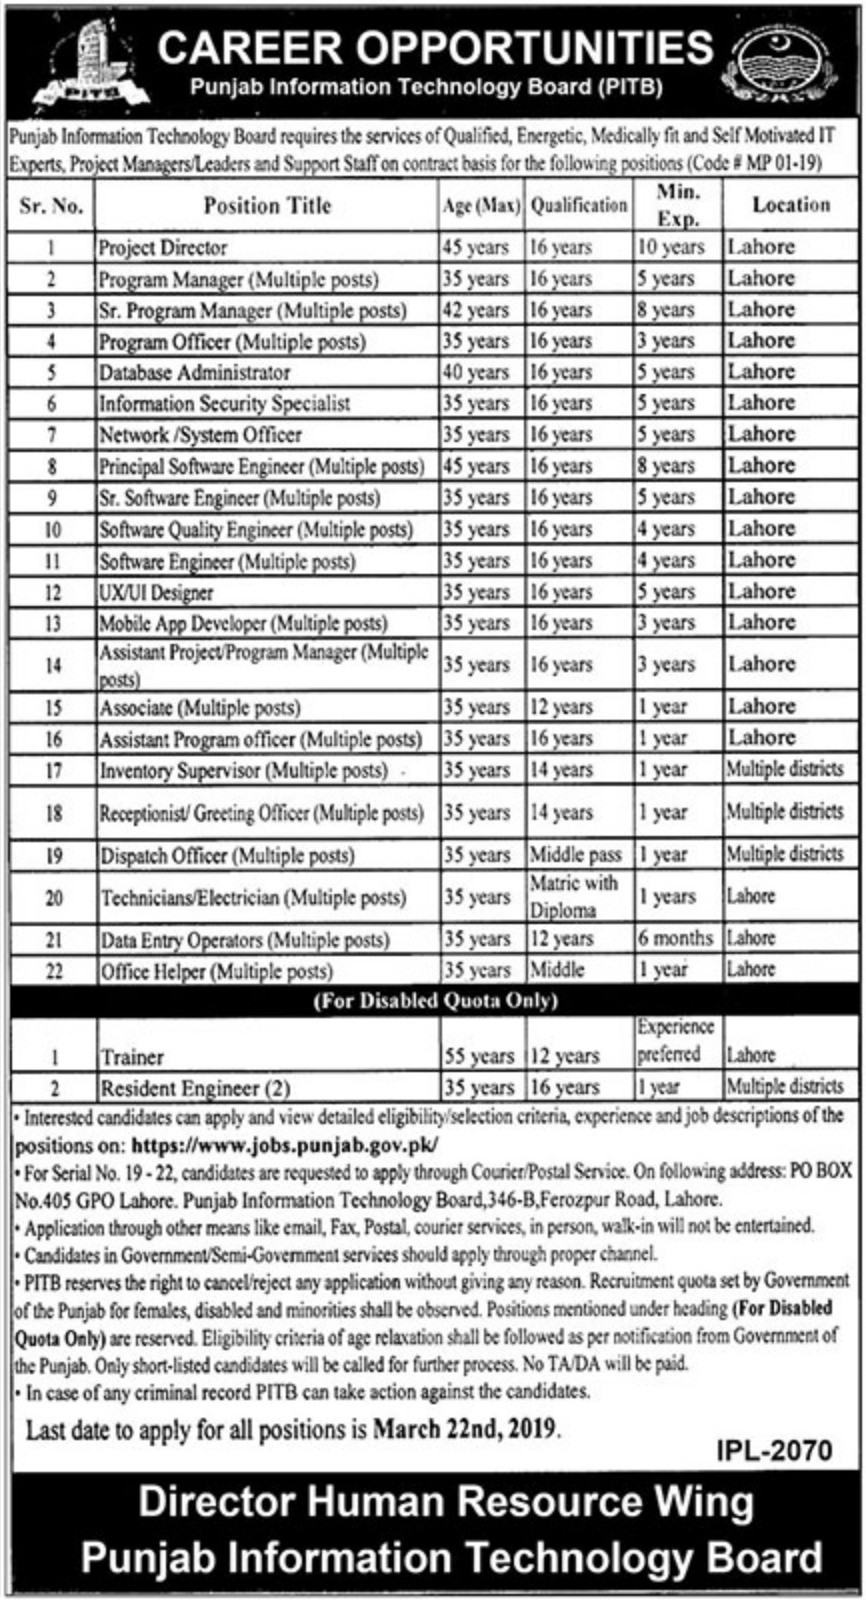 PITB Jobs 2019 Punjab Information Technology Board Latest